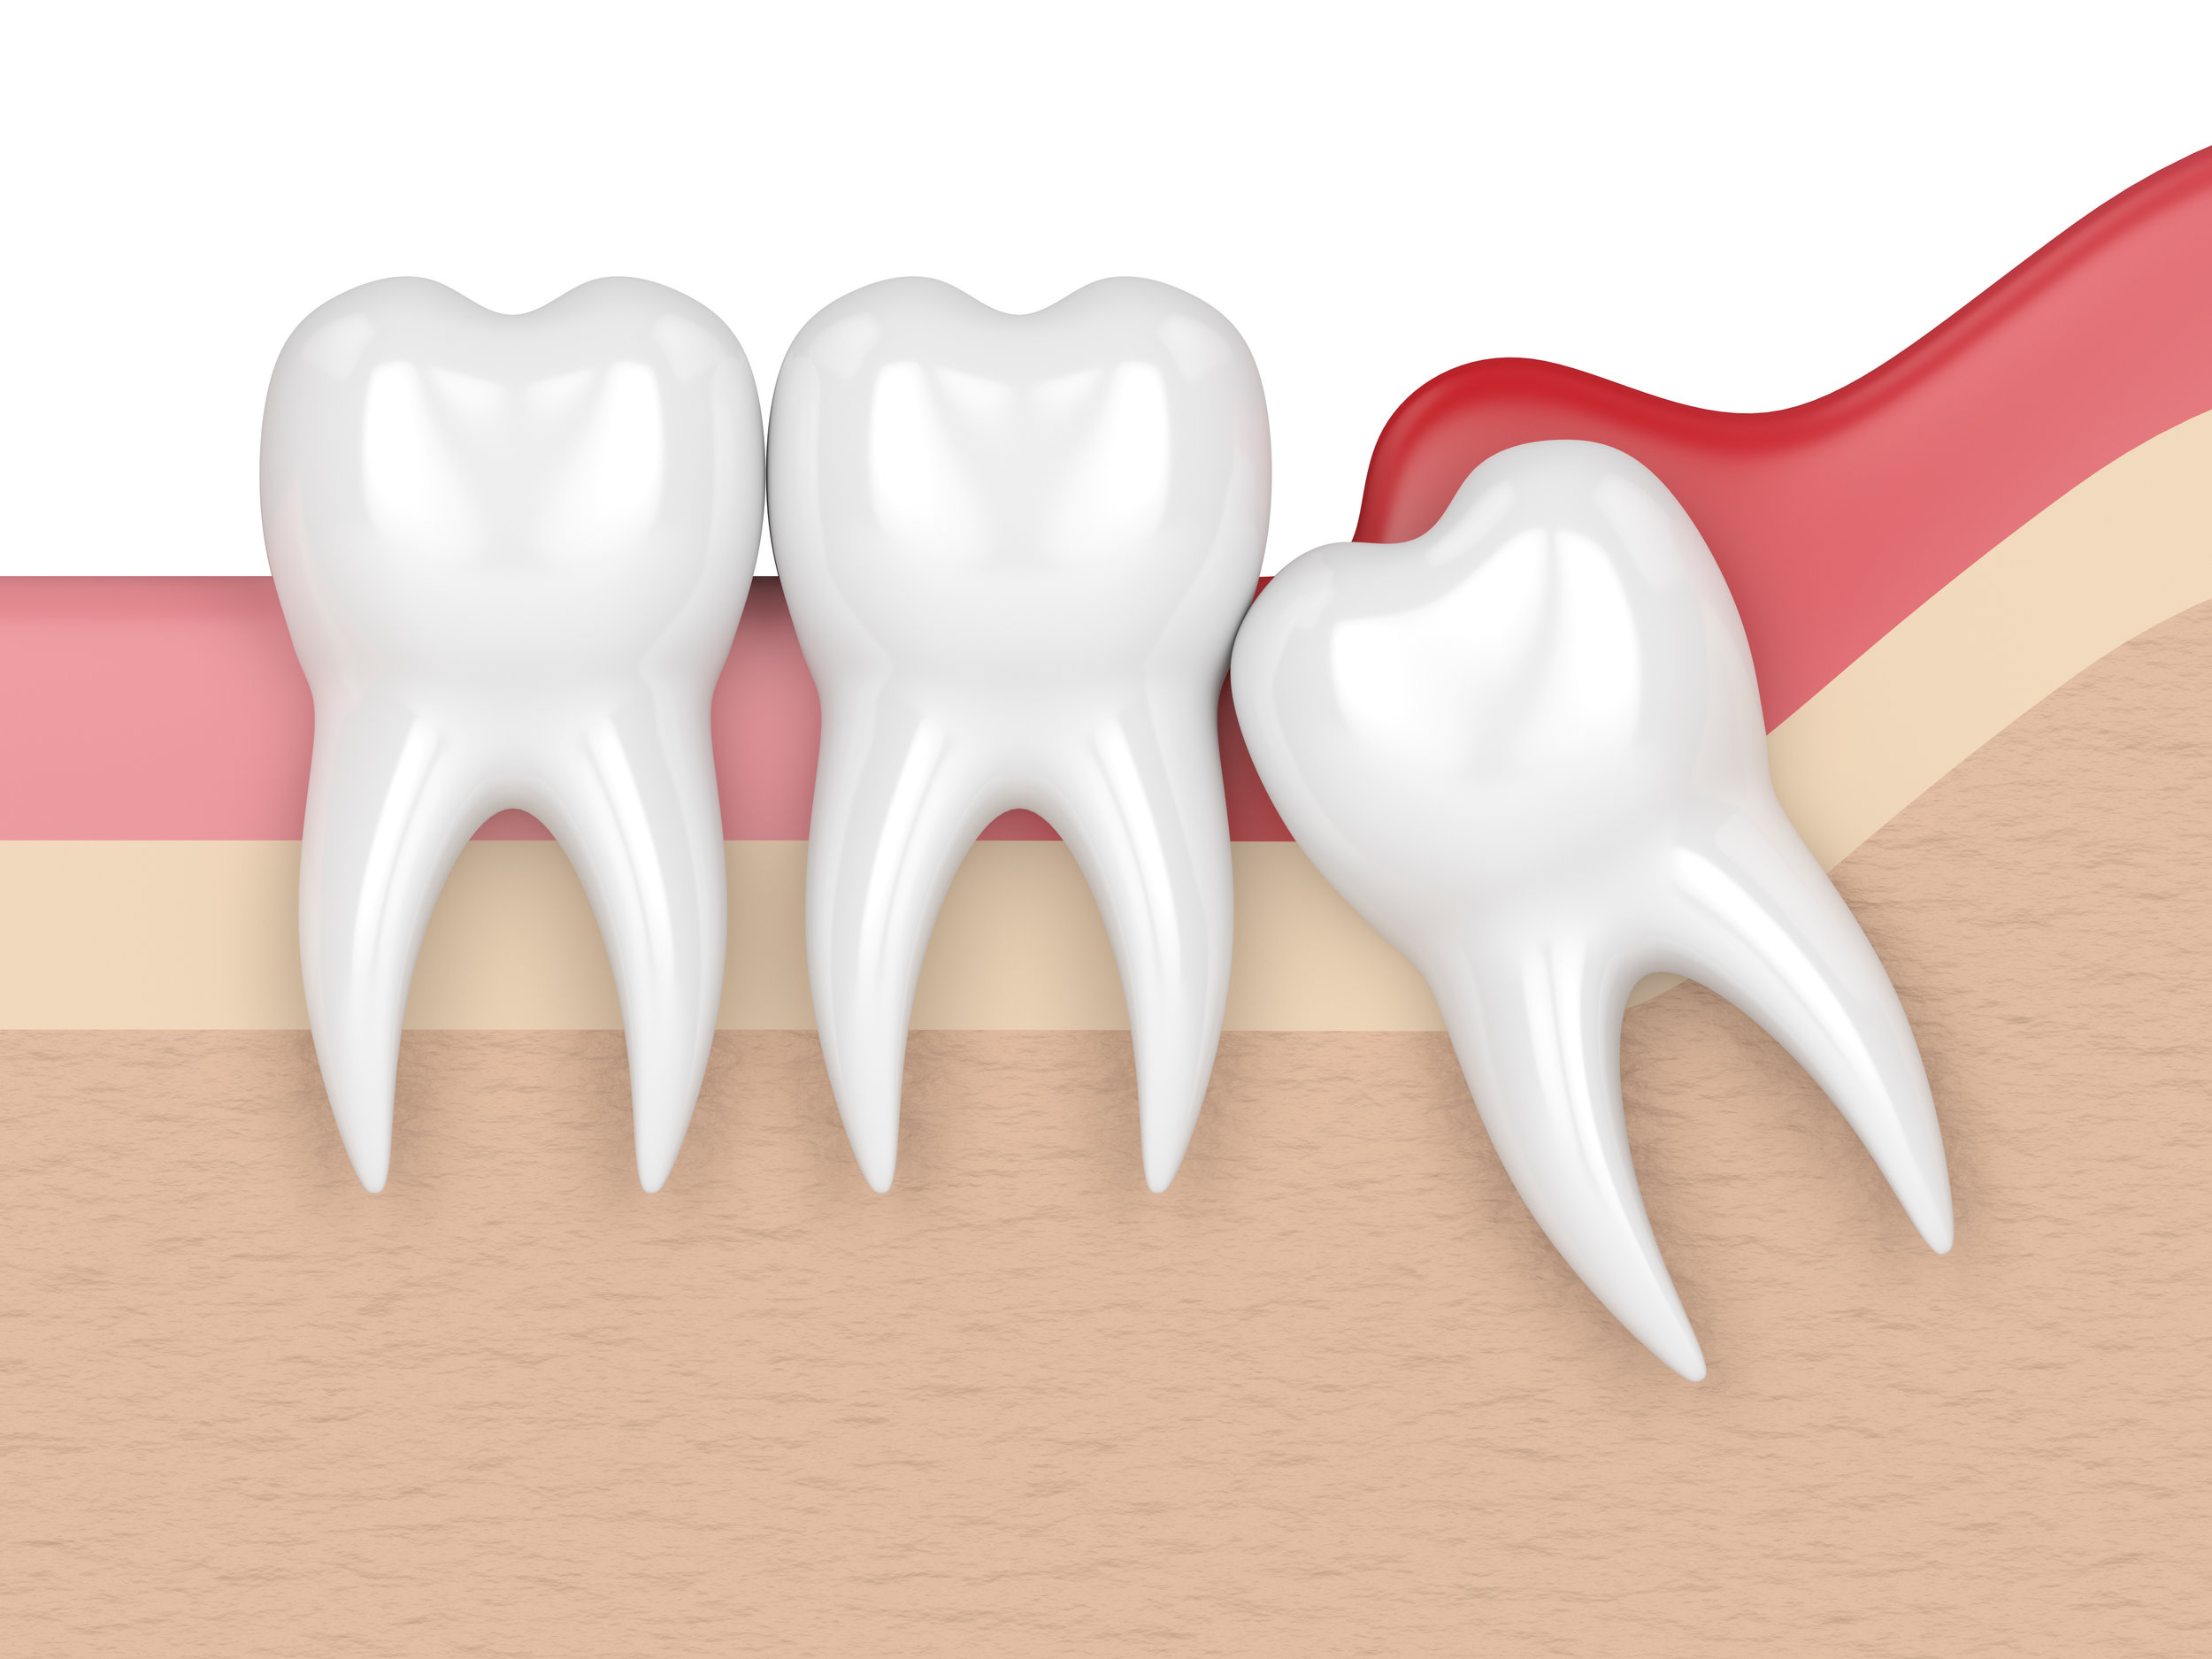 5 Signs that Your Wisdom Teeth Are Coming In